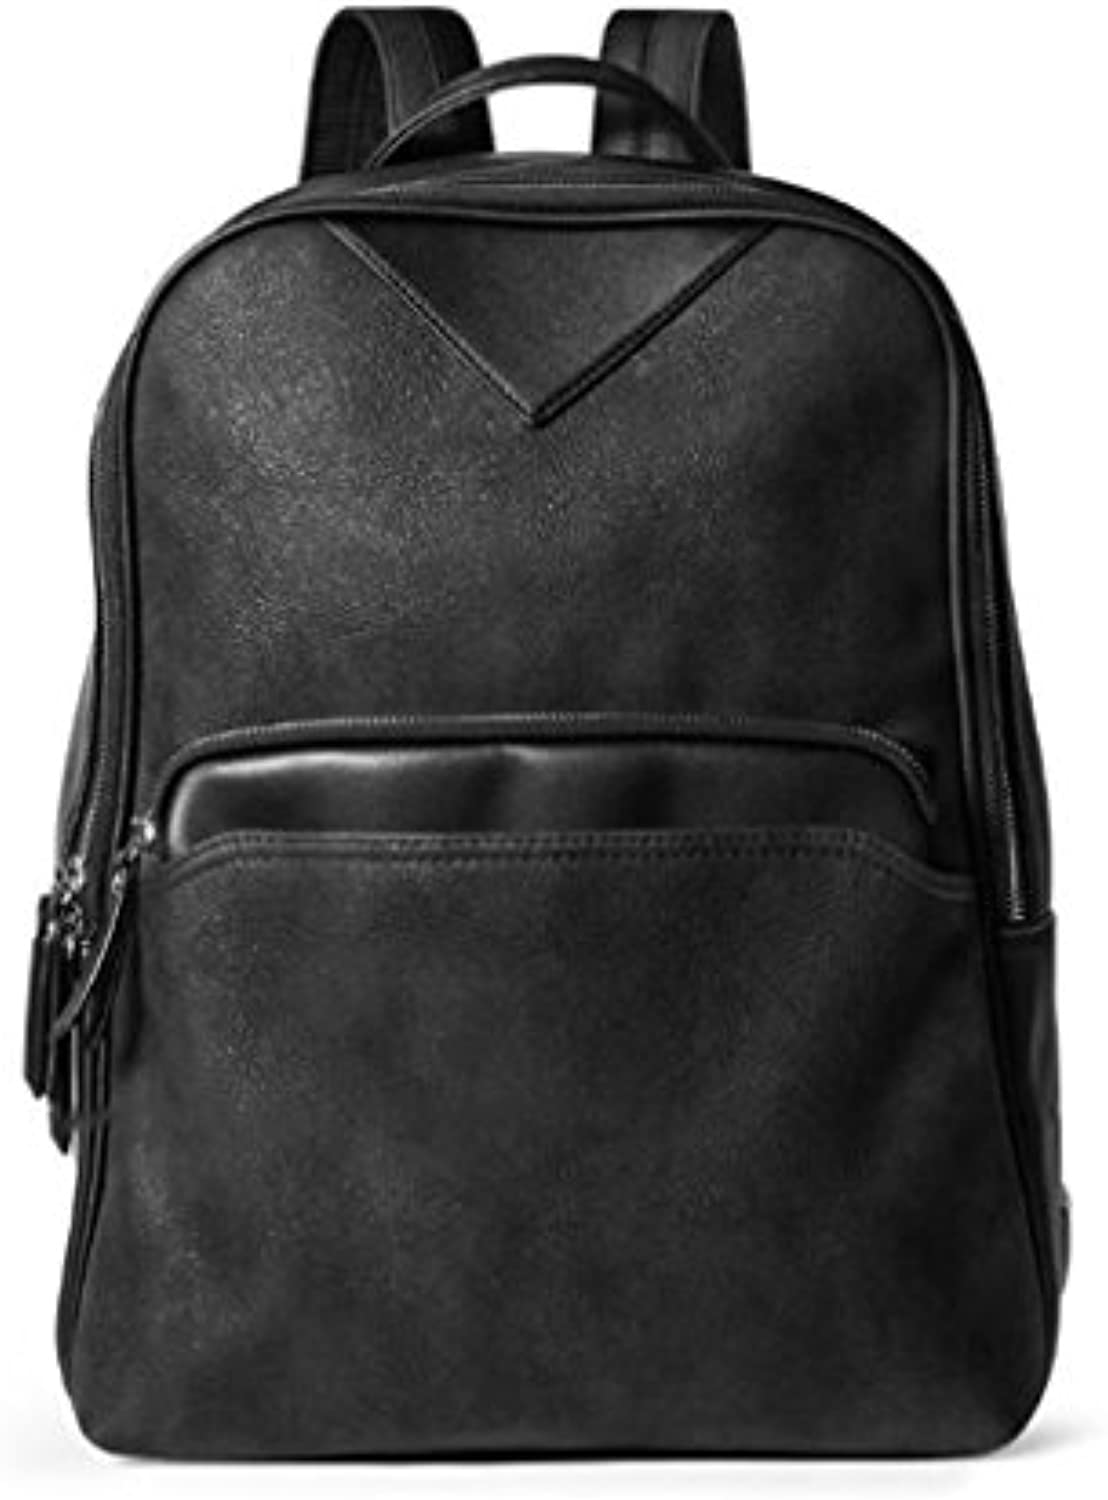 481bf7d604a6 Waterproof Laptop Backpack Anti Theft Travel Backpack Large Rucksack ...